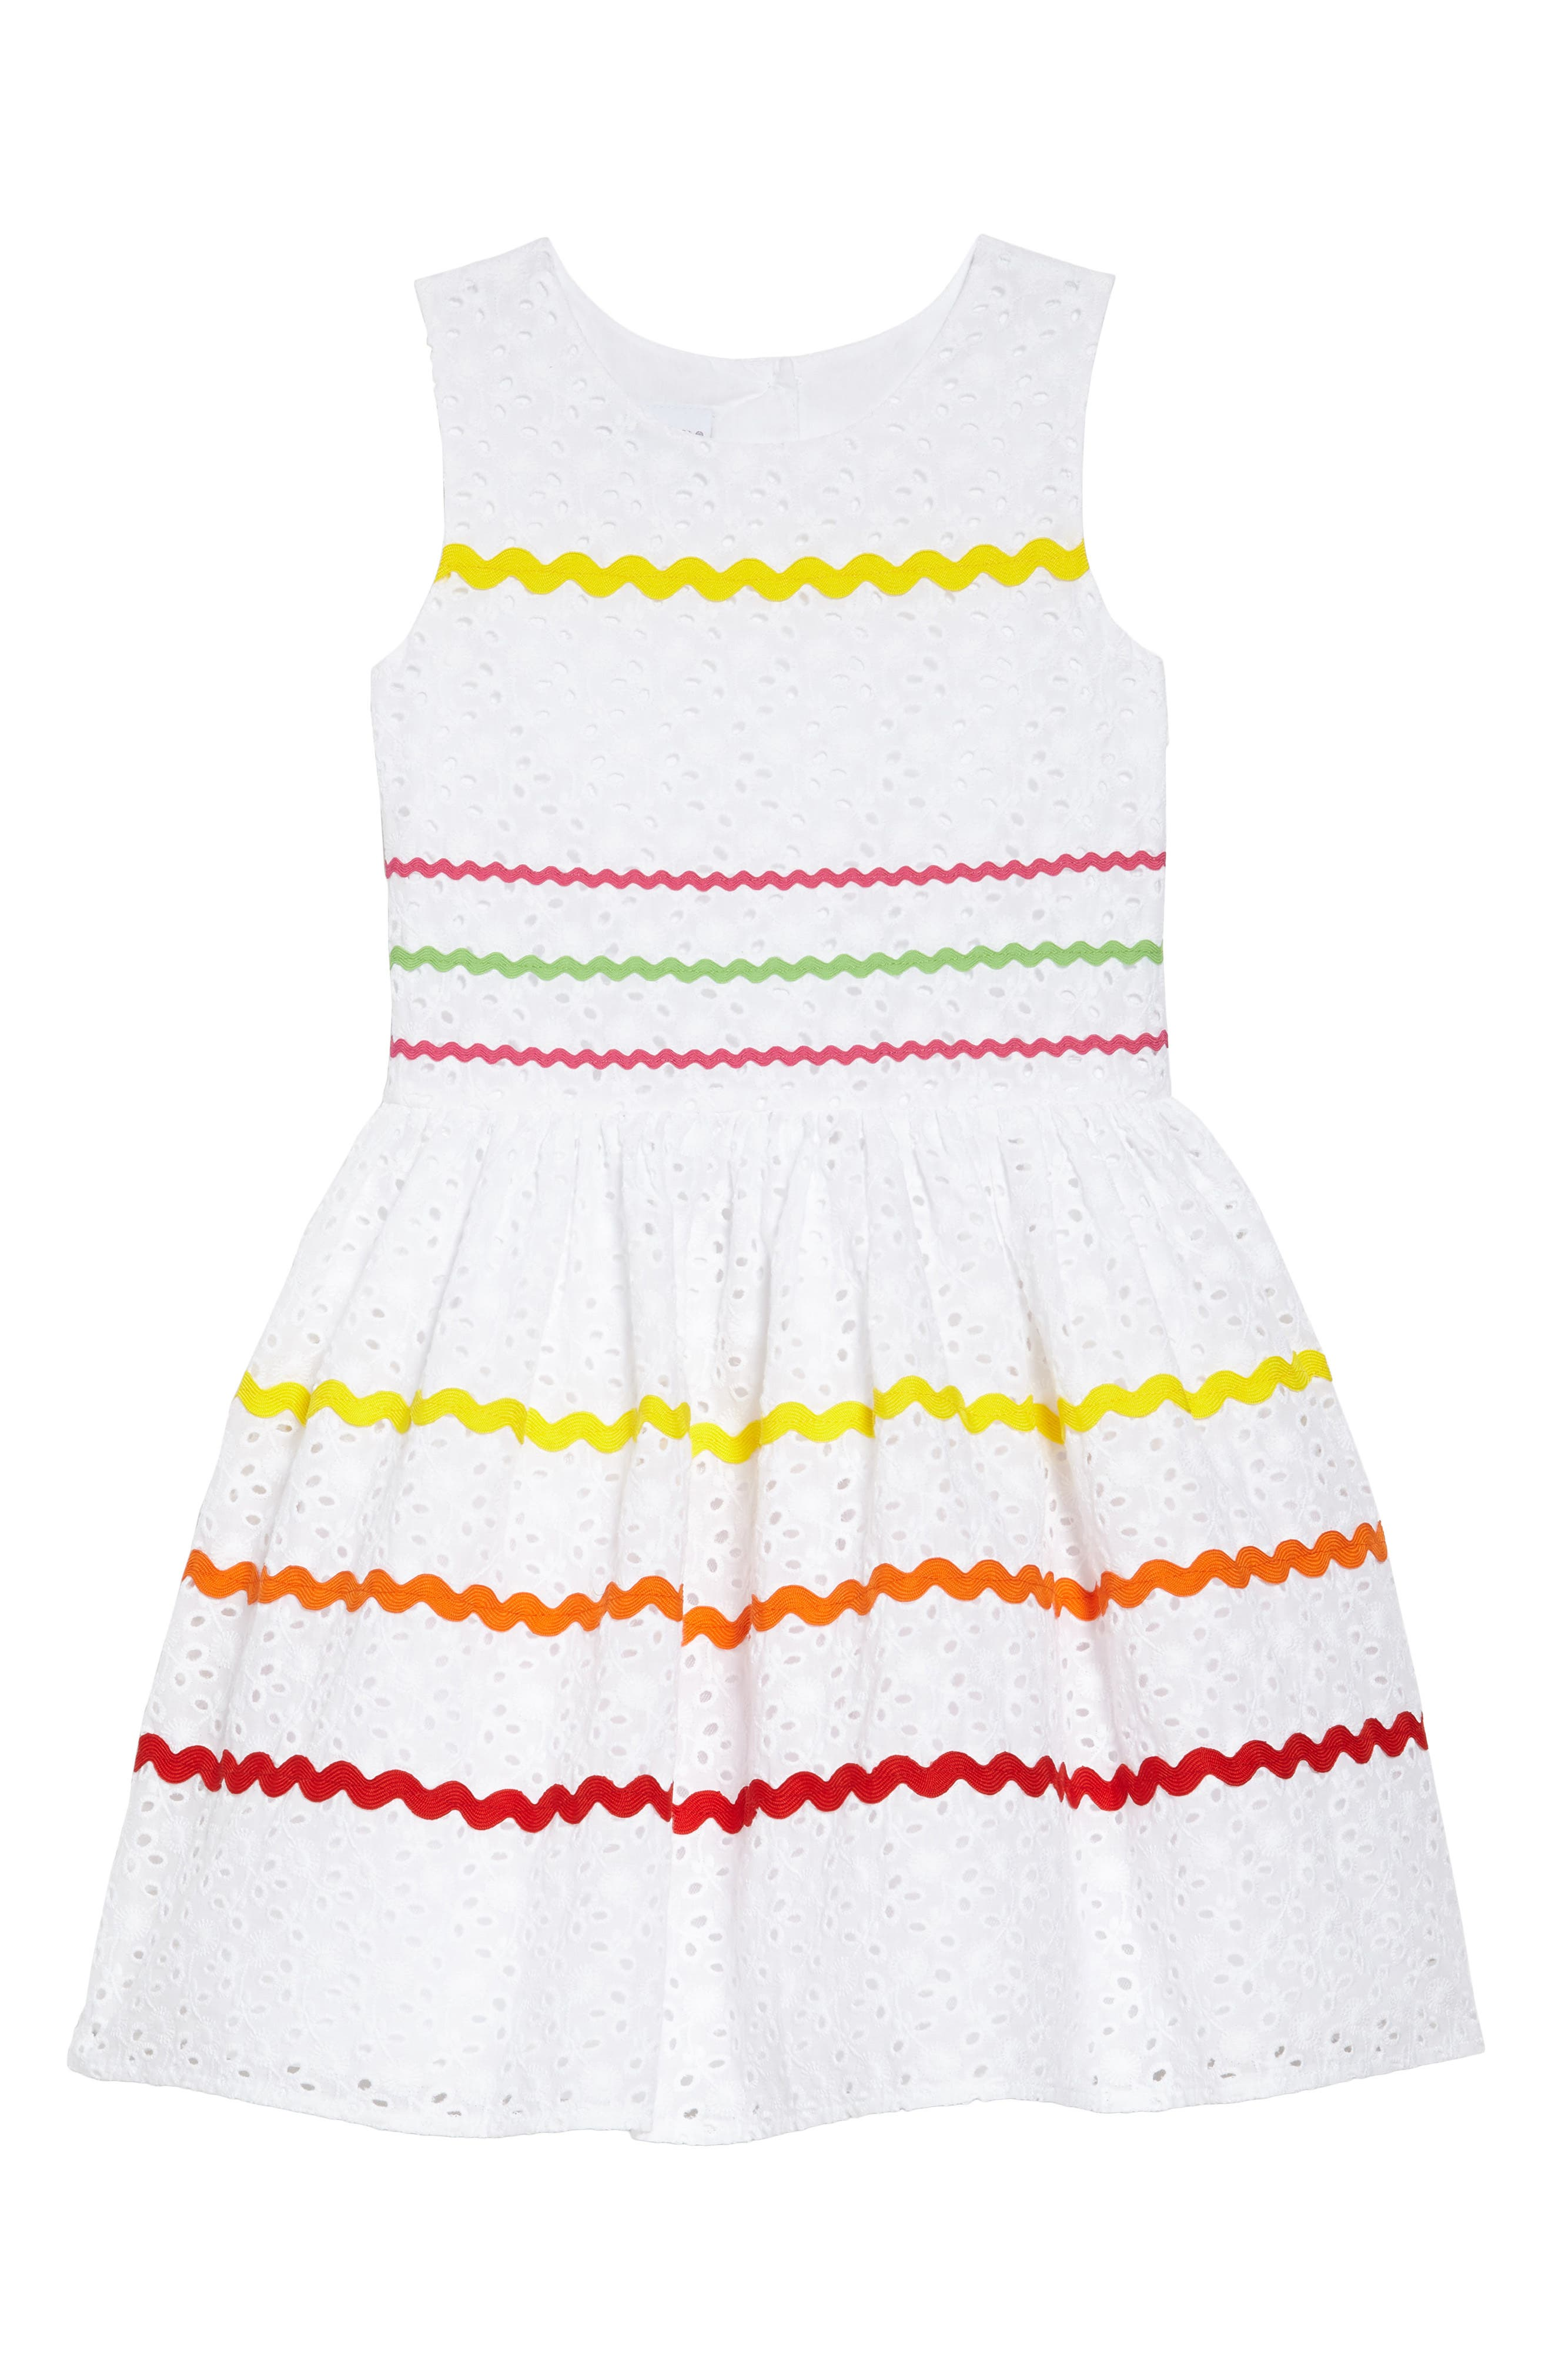 Rickrack Stripe Eyelet Dress,                             Main thumbnail 1, color,                             100